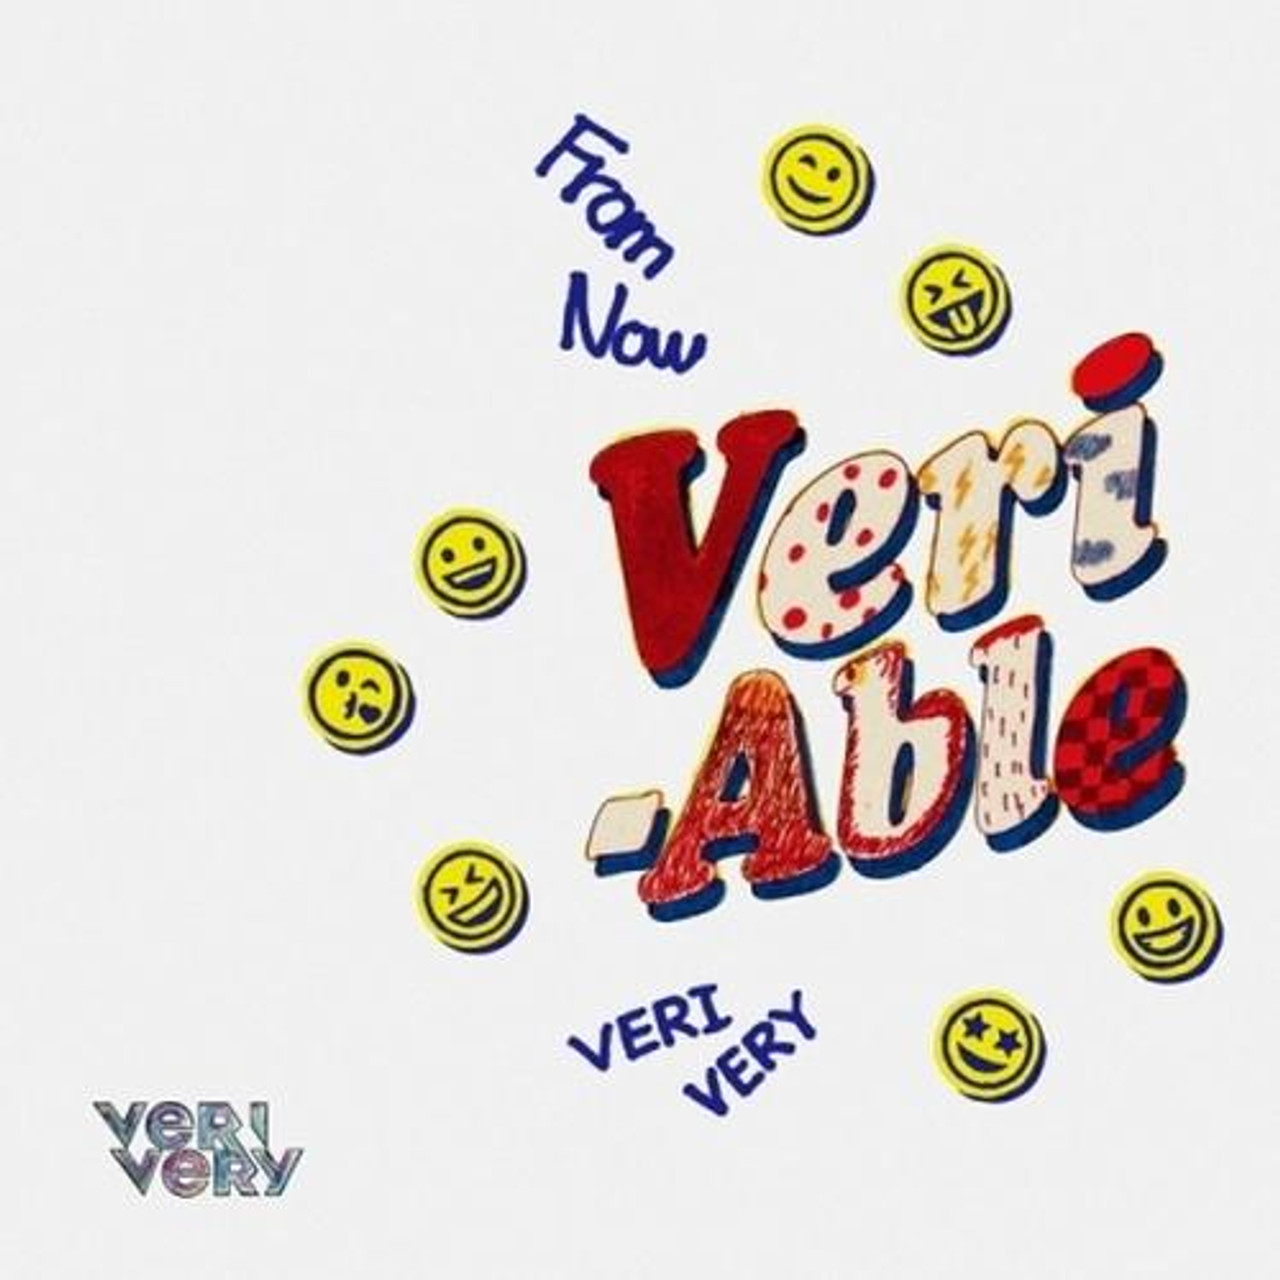 VERIVERY - 2nd Mini [VERI-ABLE] (DIY Ver.) (Limited Edition) + Poster